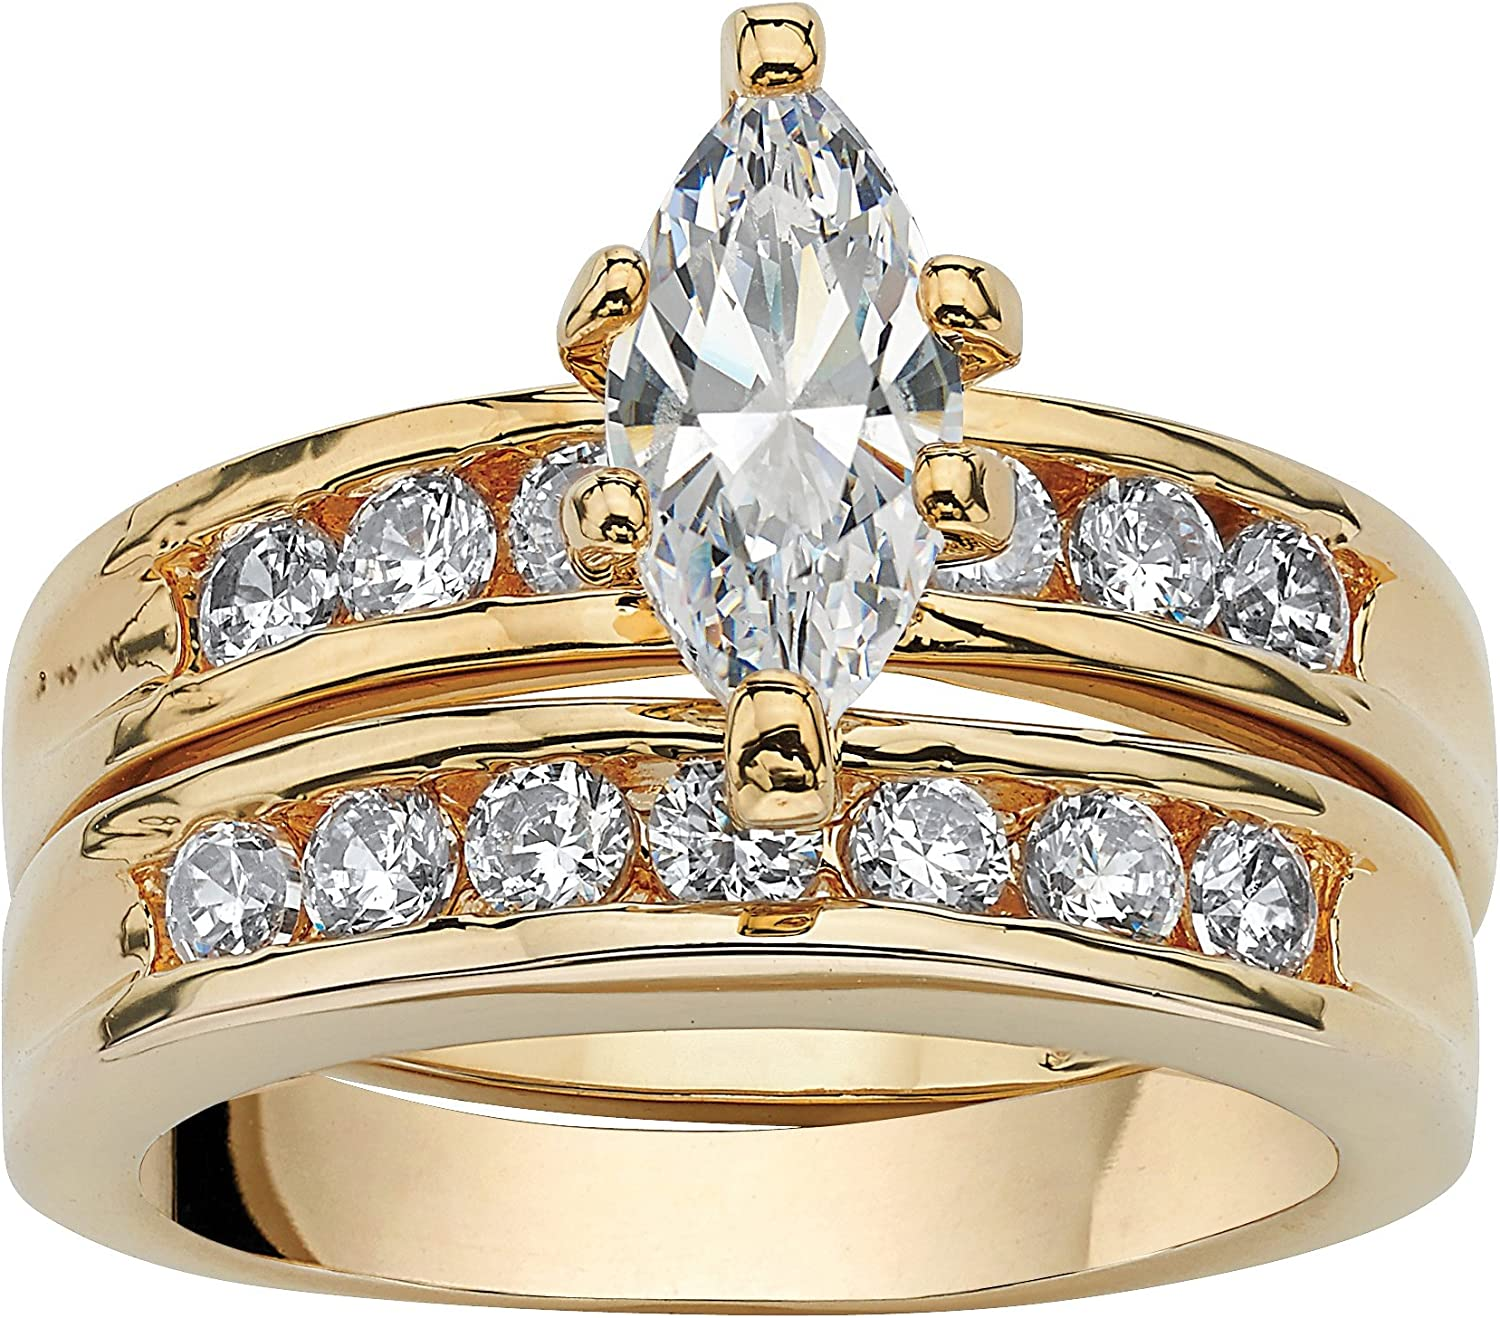 Palm Beach Boston Mall Jewelry Gold-Plated Marquise Ranking TOP19 Cubic Cut and Zirc Round